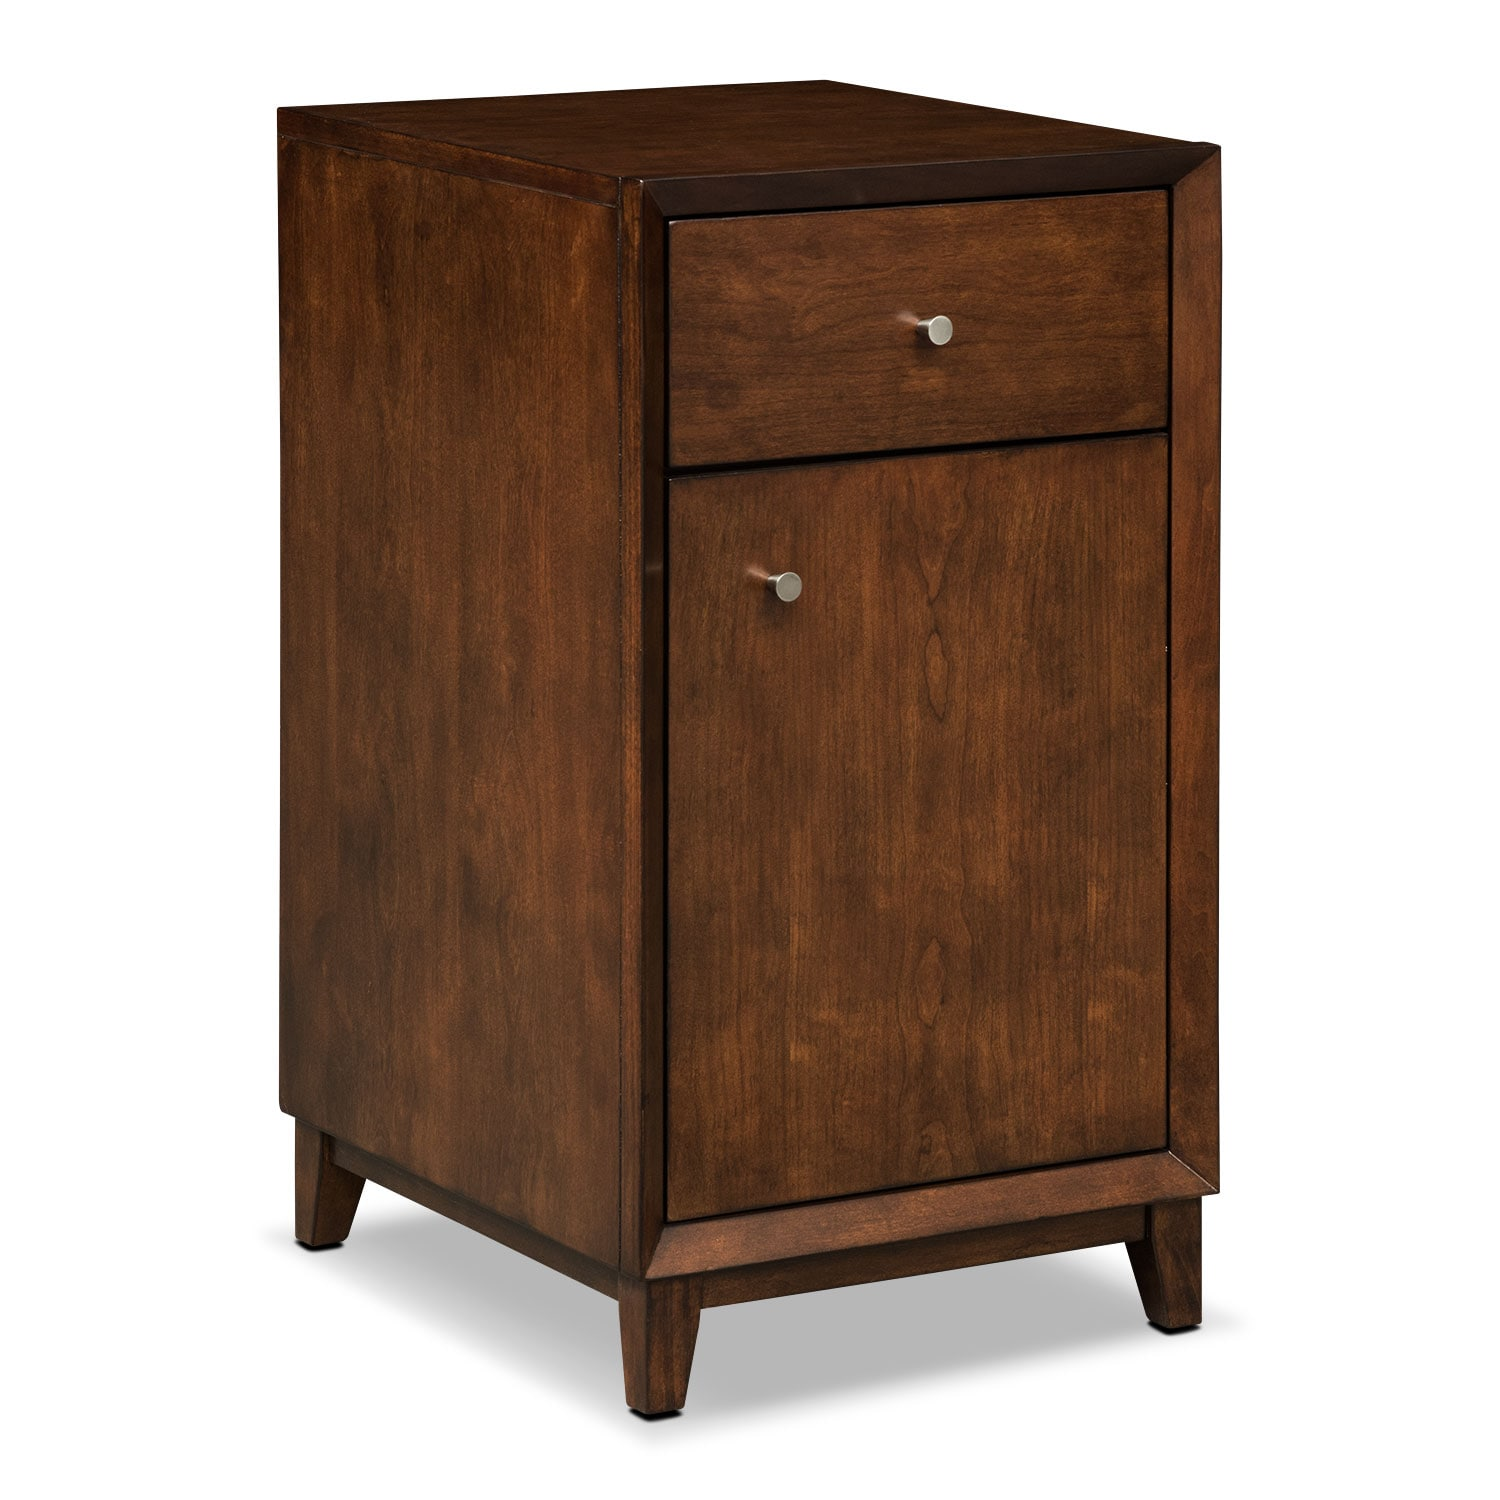 Oslo Door File Cabinet - Cherry